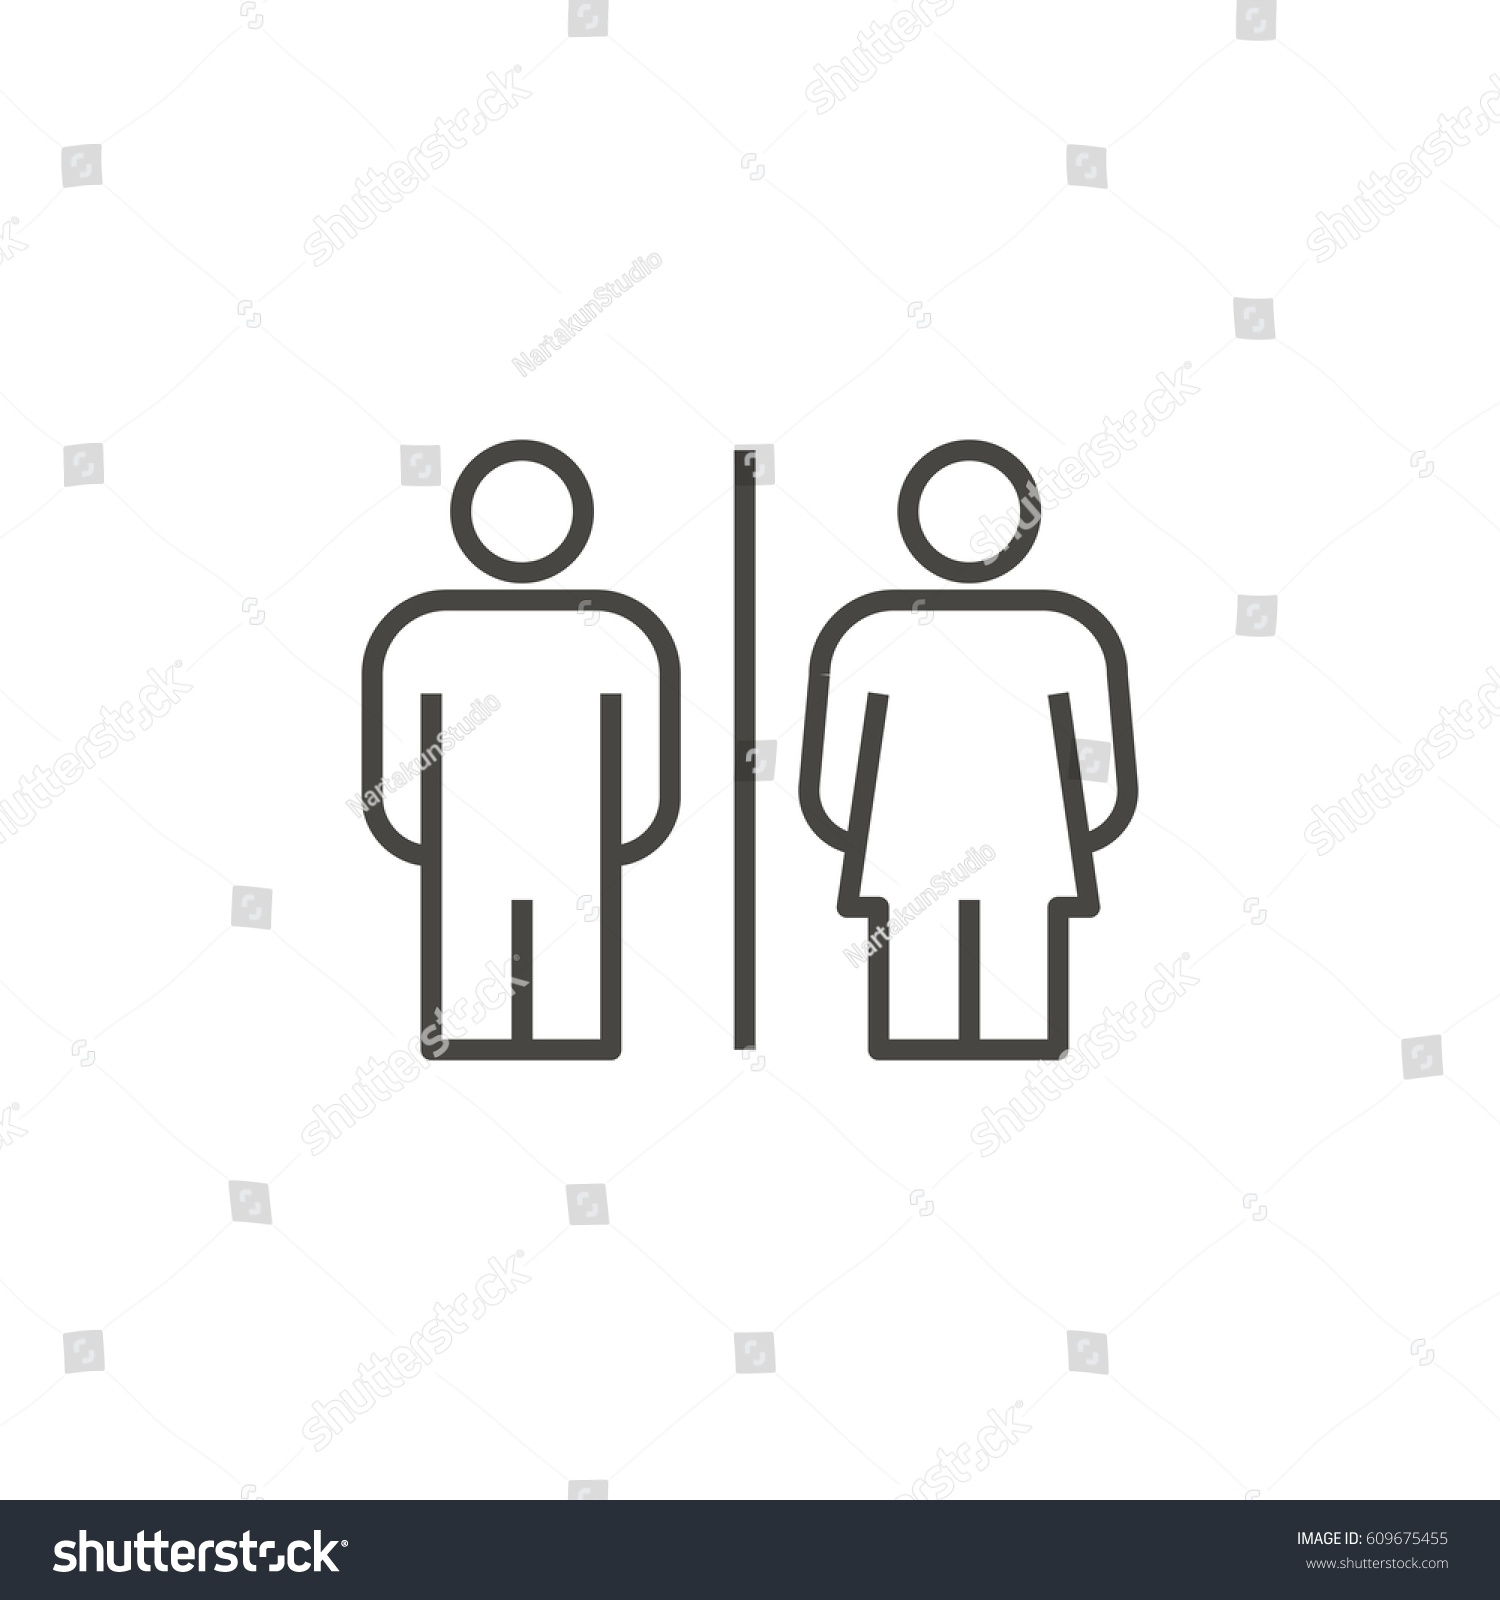 Girls bathroom sign outline - Toilet Male Female Outline Icon Vector